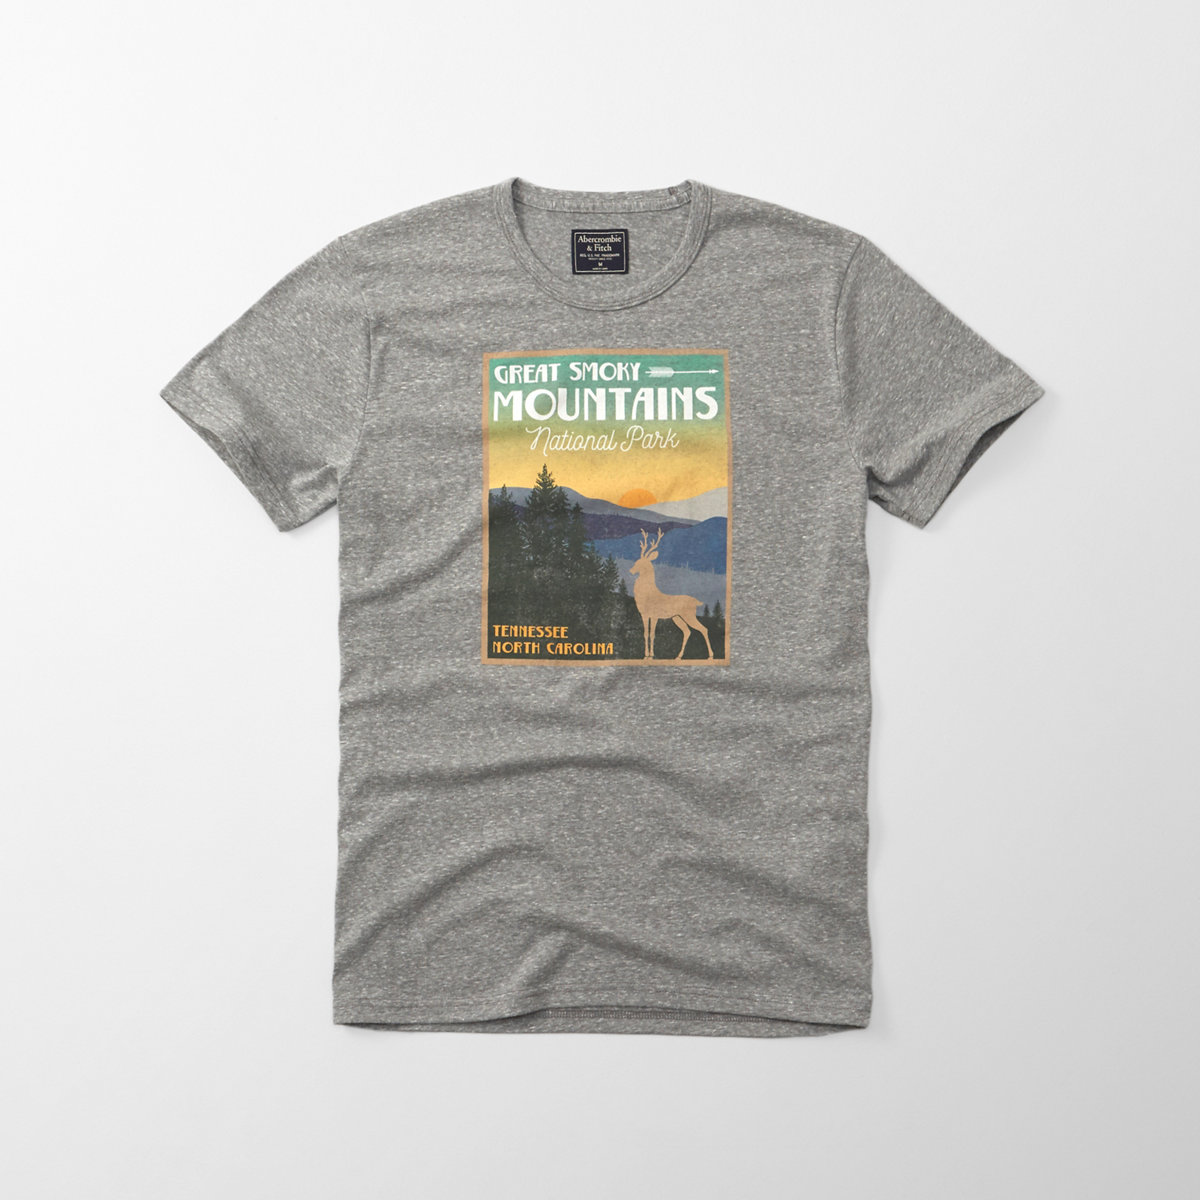 National Park Graphic Tee